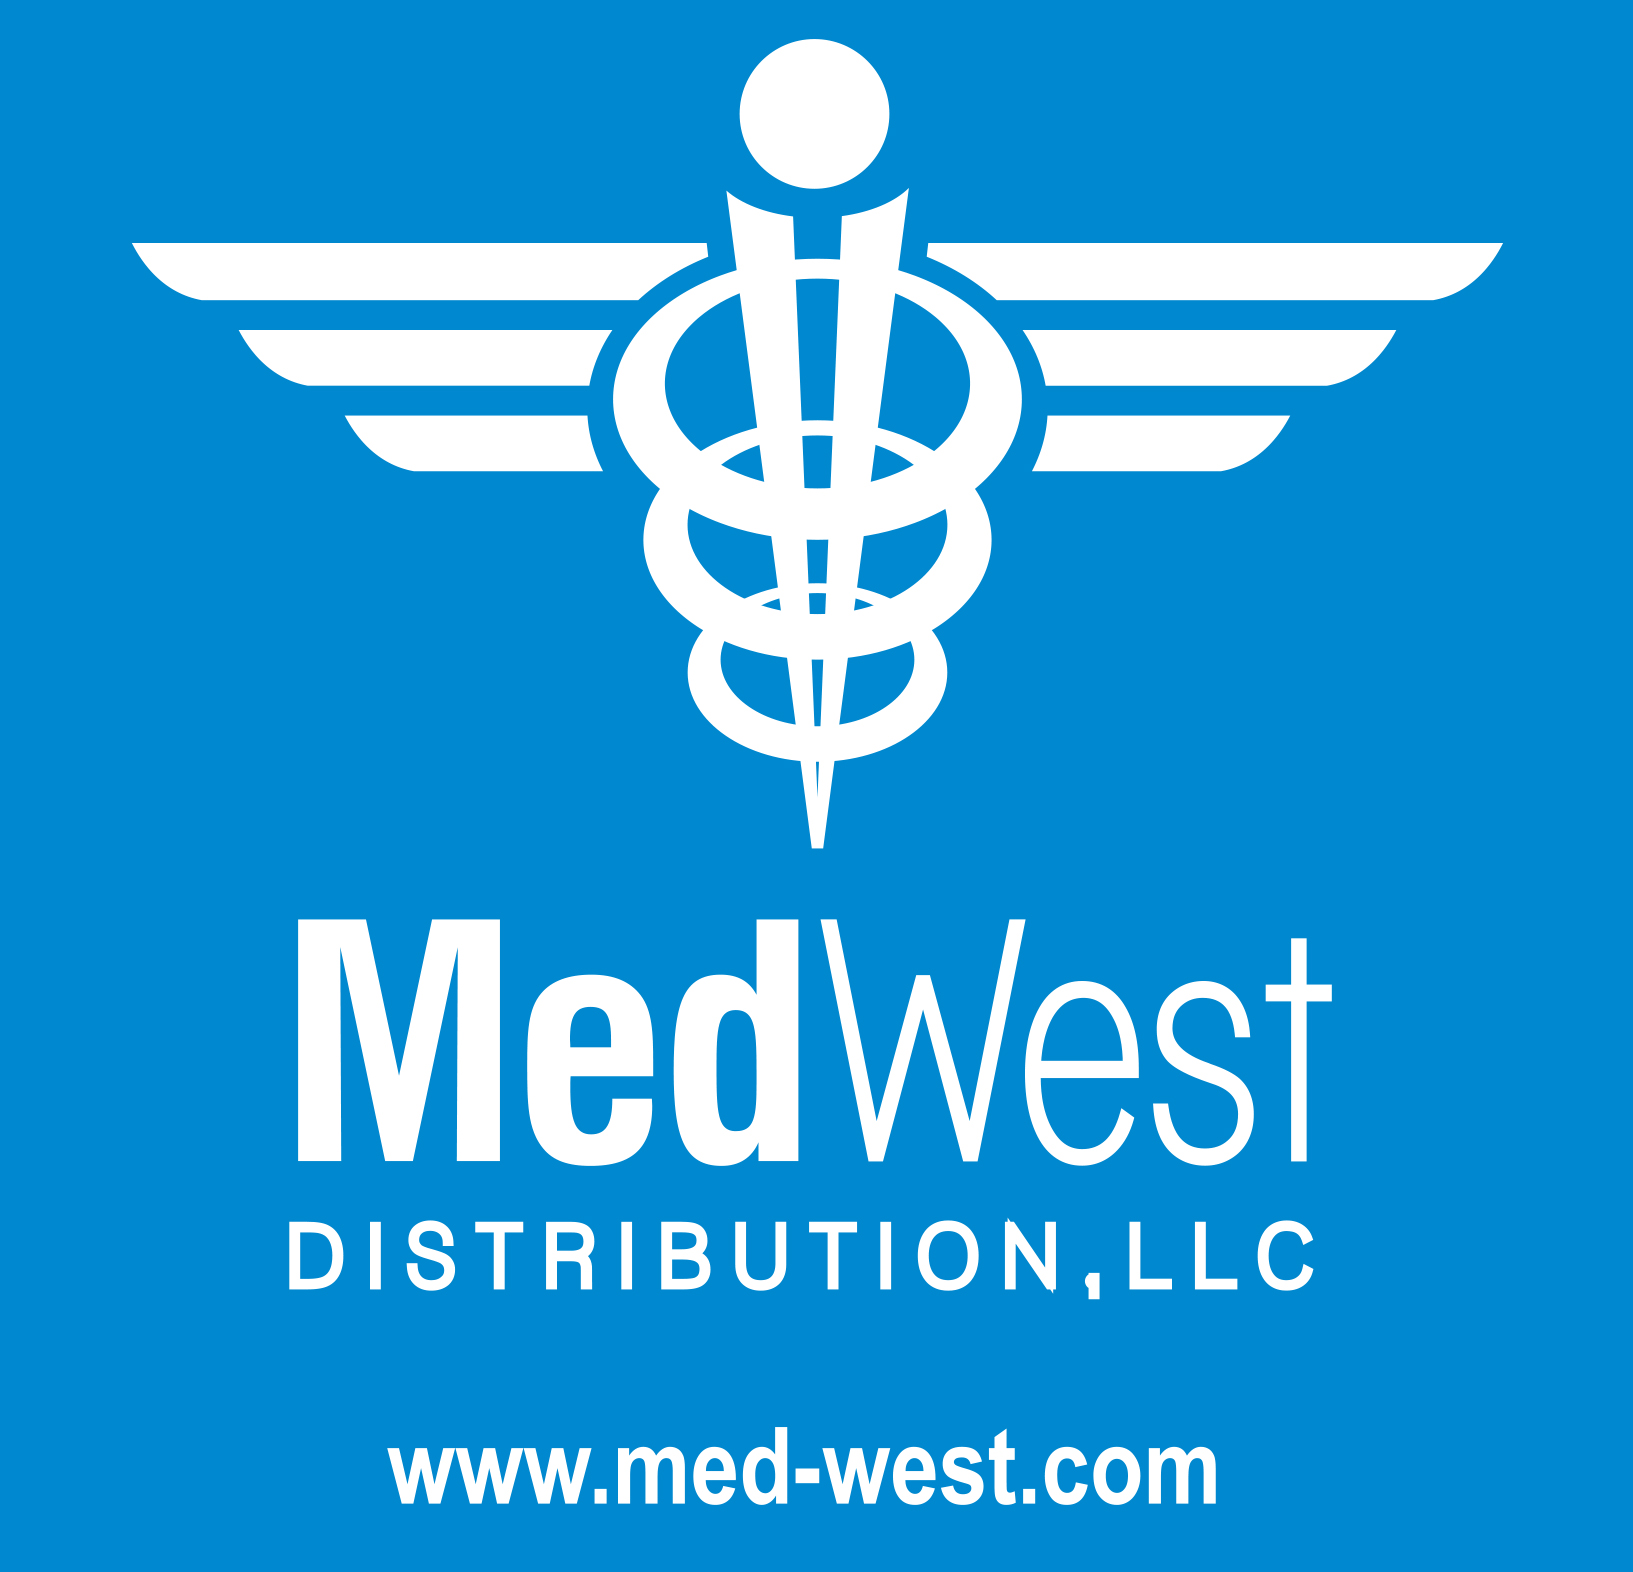 Med-West_Logo_Blue.jpg